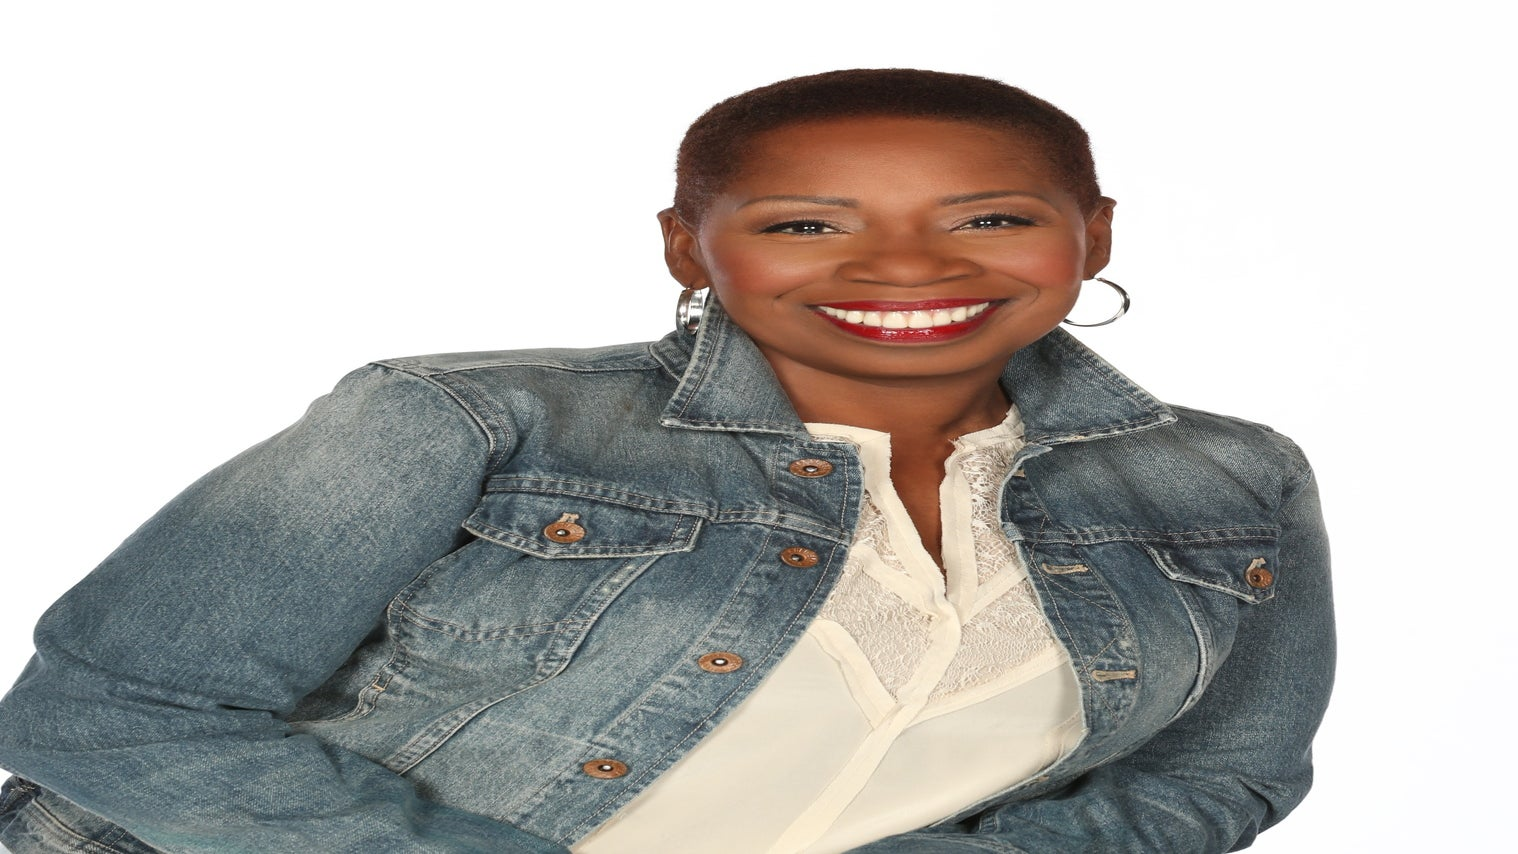 EXCLUSIVE: Read an Excerpt of Iyanla Vanzant's New Book 'Forgiveness'